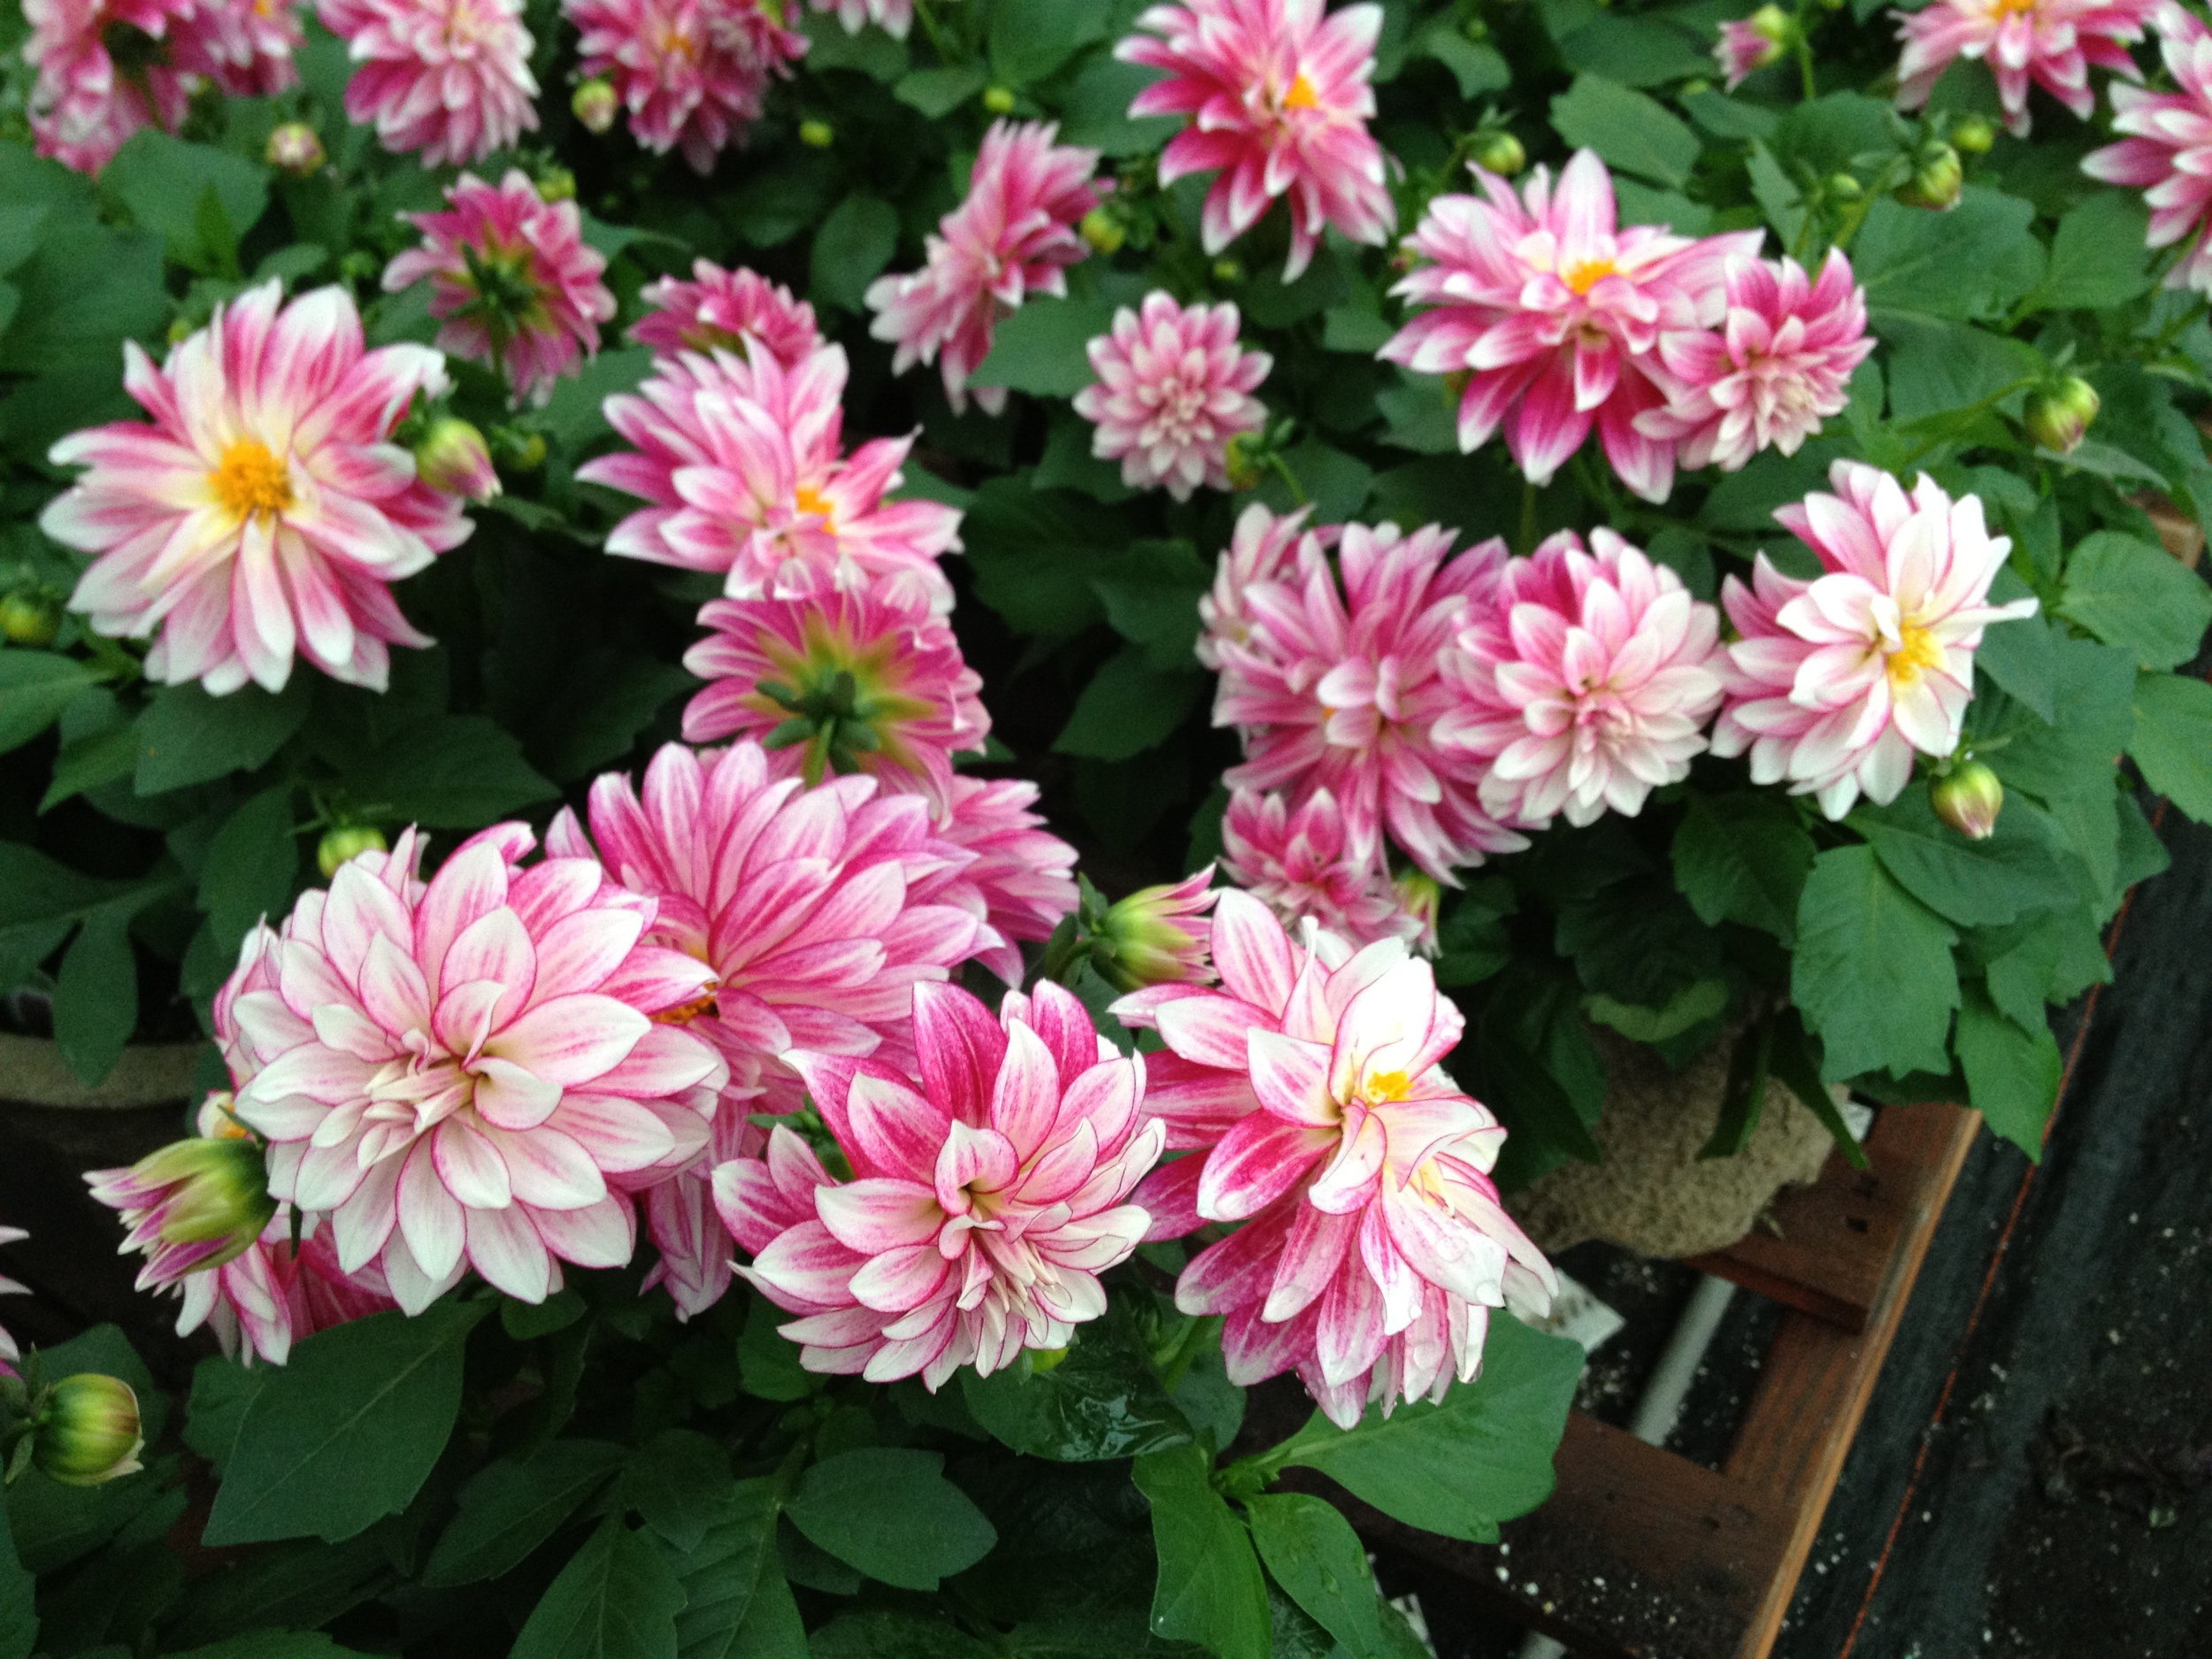 """Dahlias are a popular 4.5"""" item at Schlegel Greenhouse due to their uniform size and their spectacular blooms. We feature them in a wide range of colors and they sell themselves on the retail end. A good performer throughout the spring and summer and a staple in our 4.5"""" plant material program."""